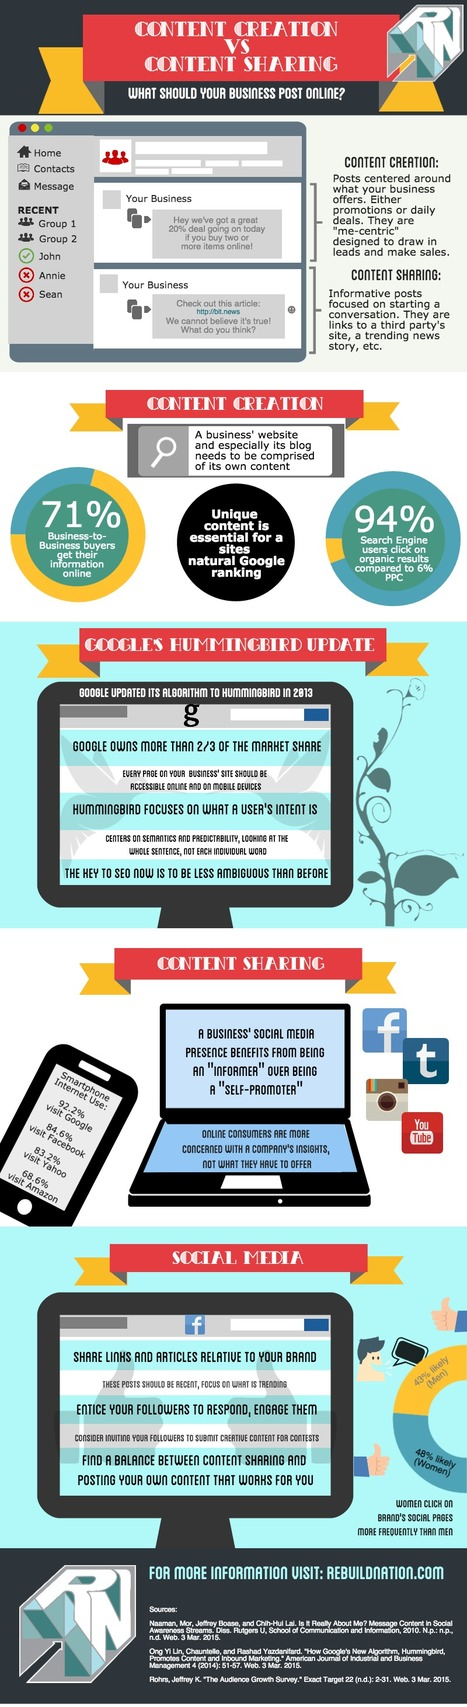 Should you Use Content Creation or Content Sharing? [Infographic] | digital marketing strategy | Scoop.it